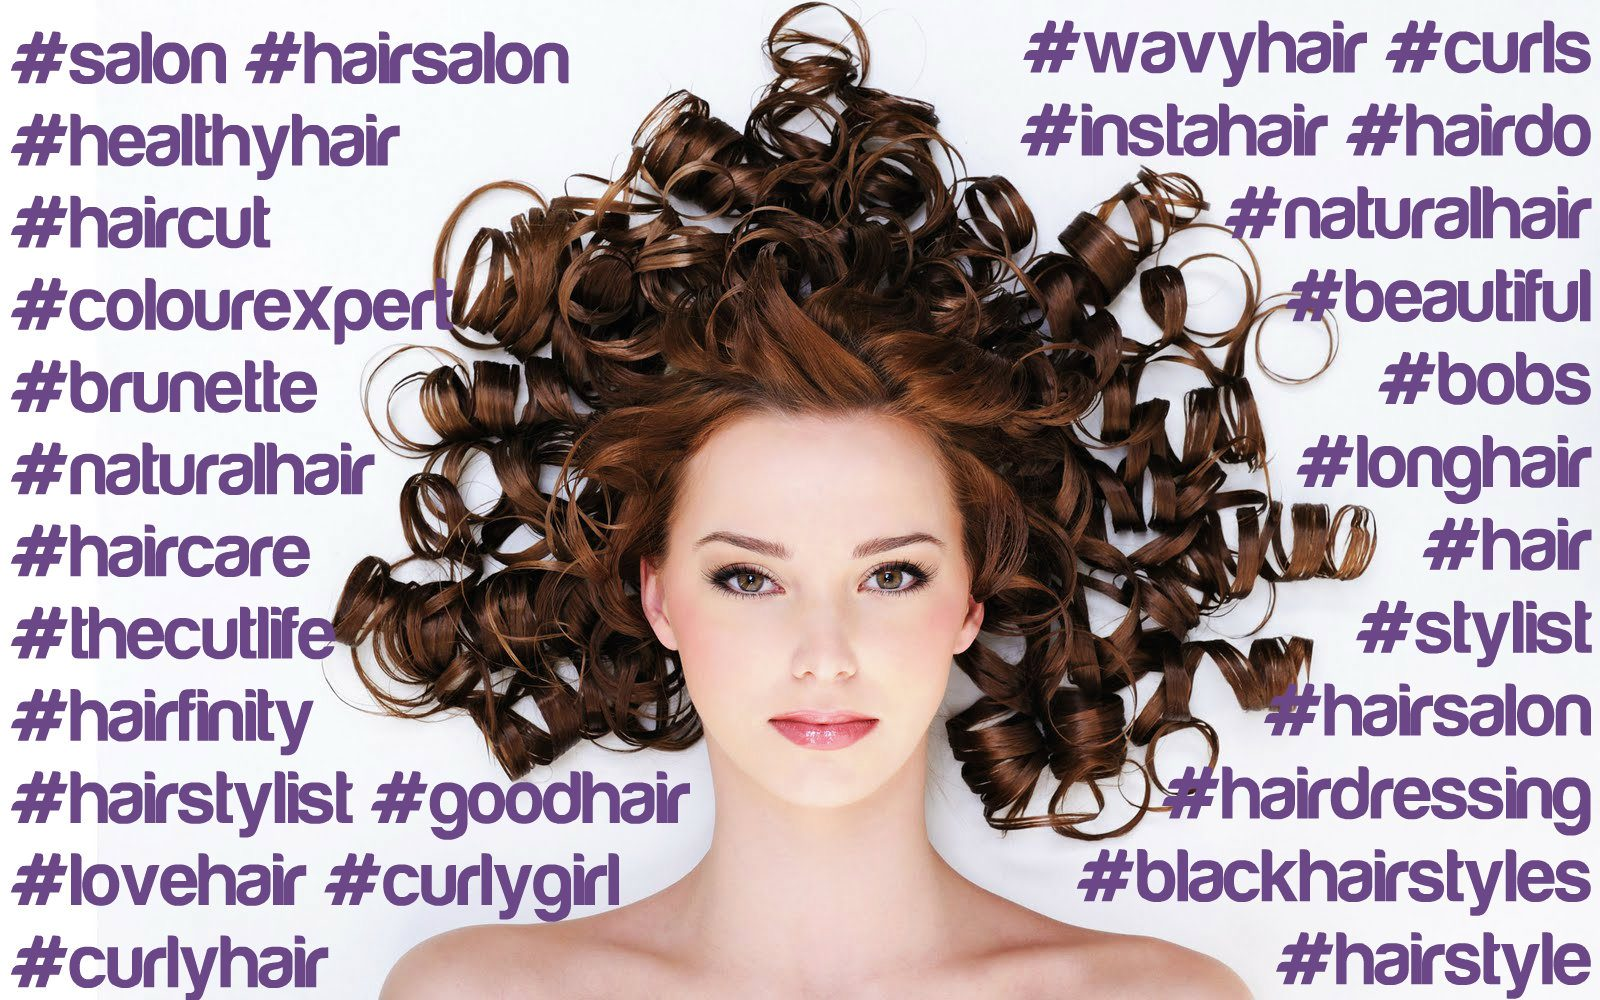 hair-salon-hashtags